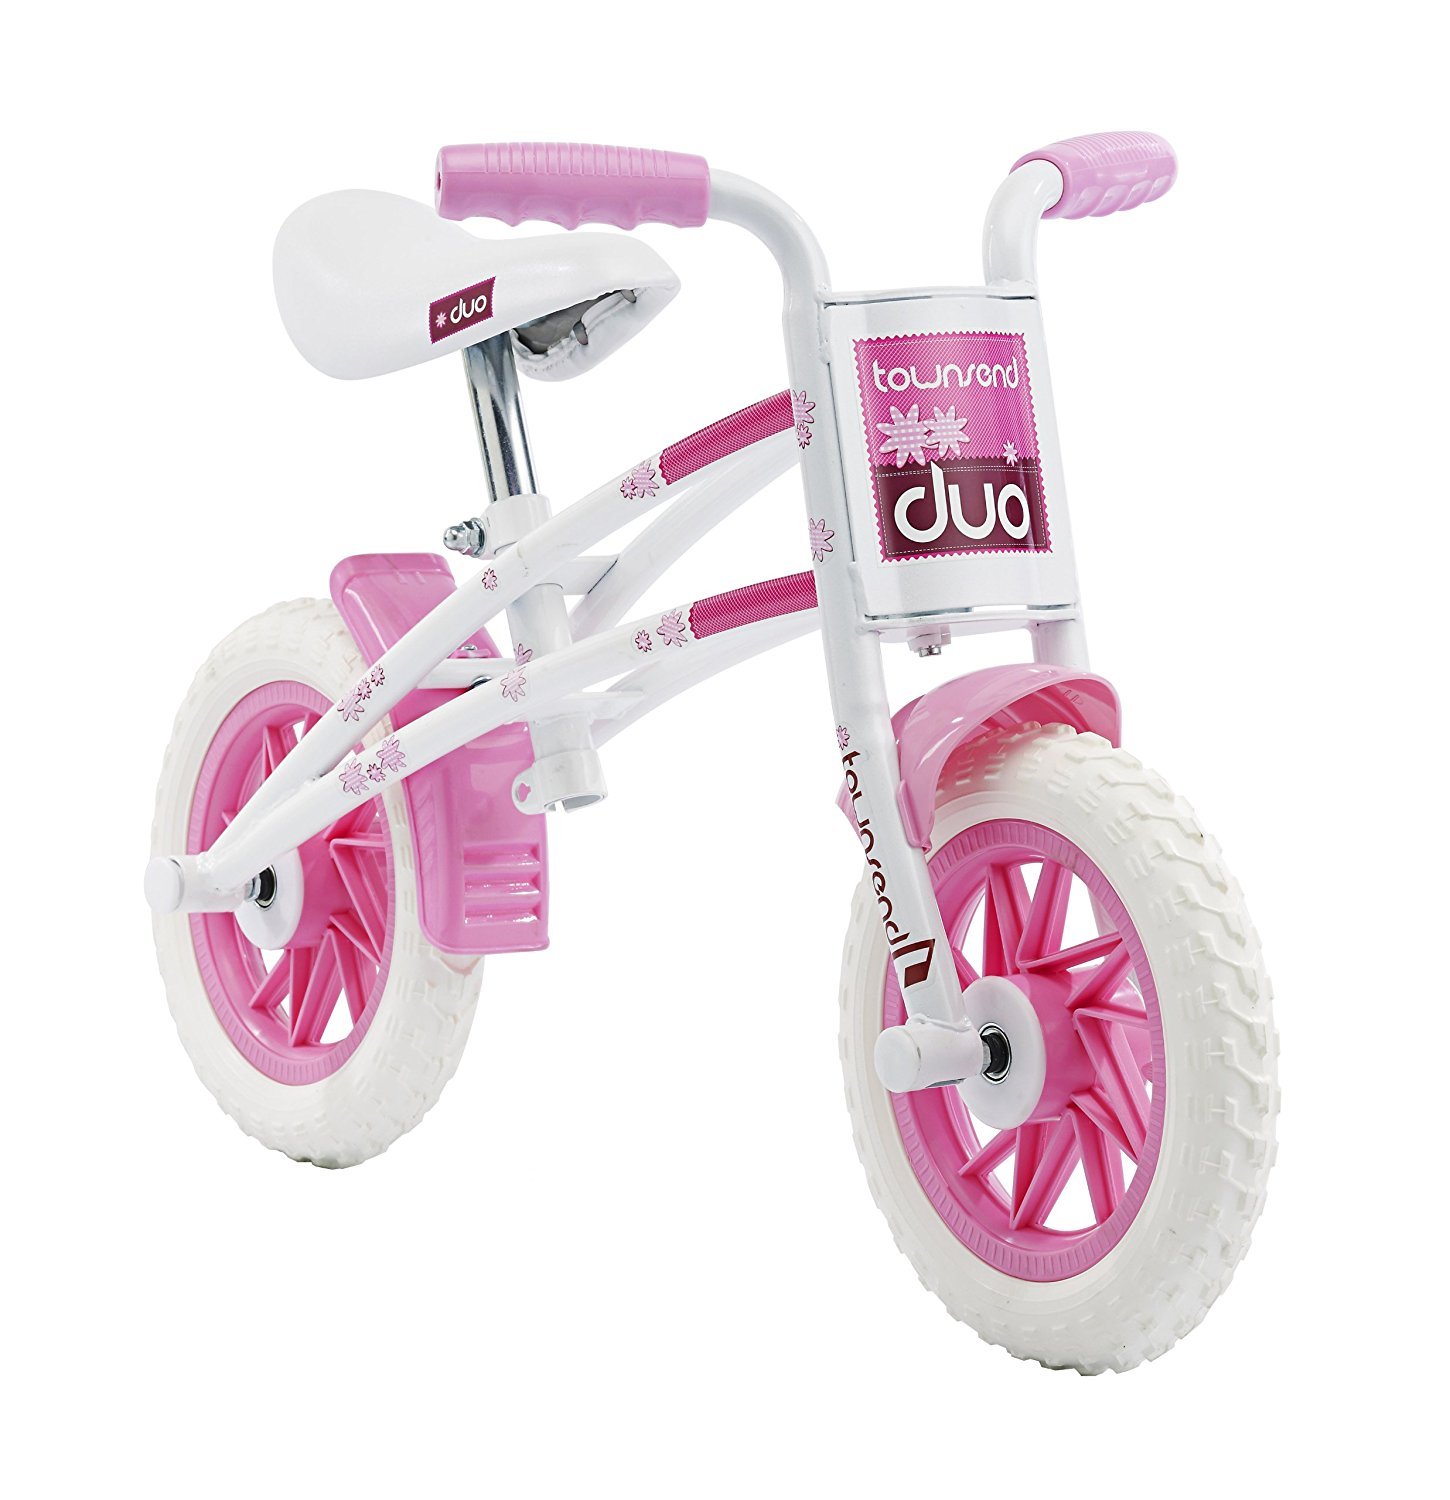 Townsend Duo Girls' Balance Bike